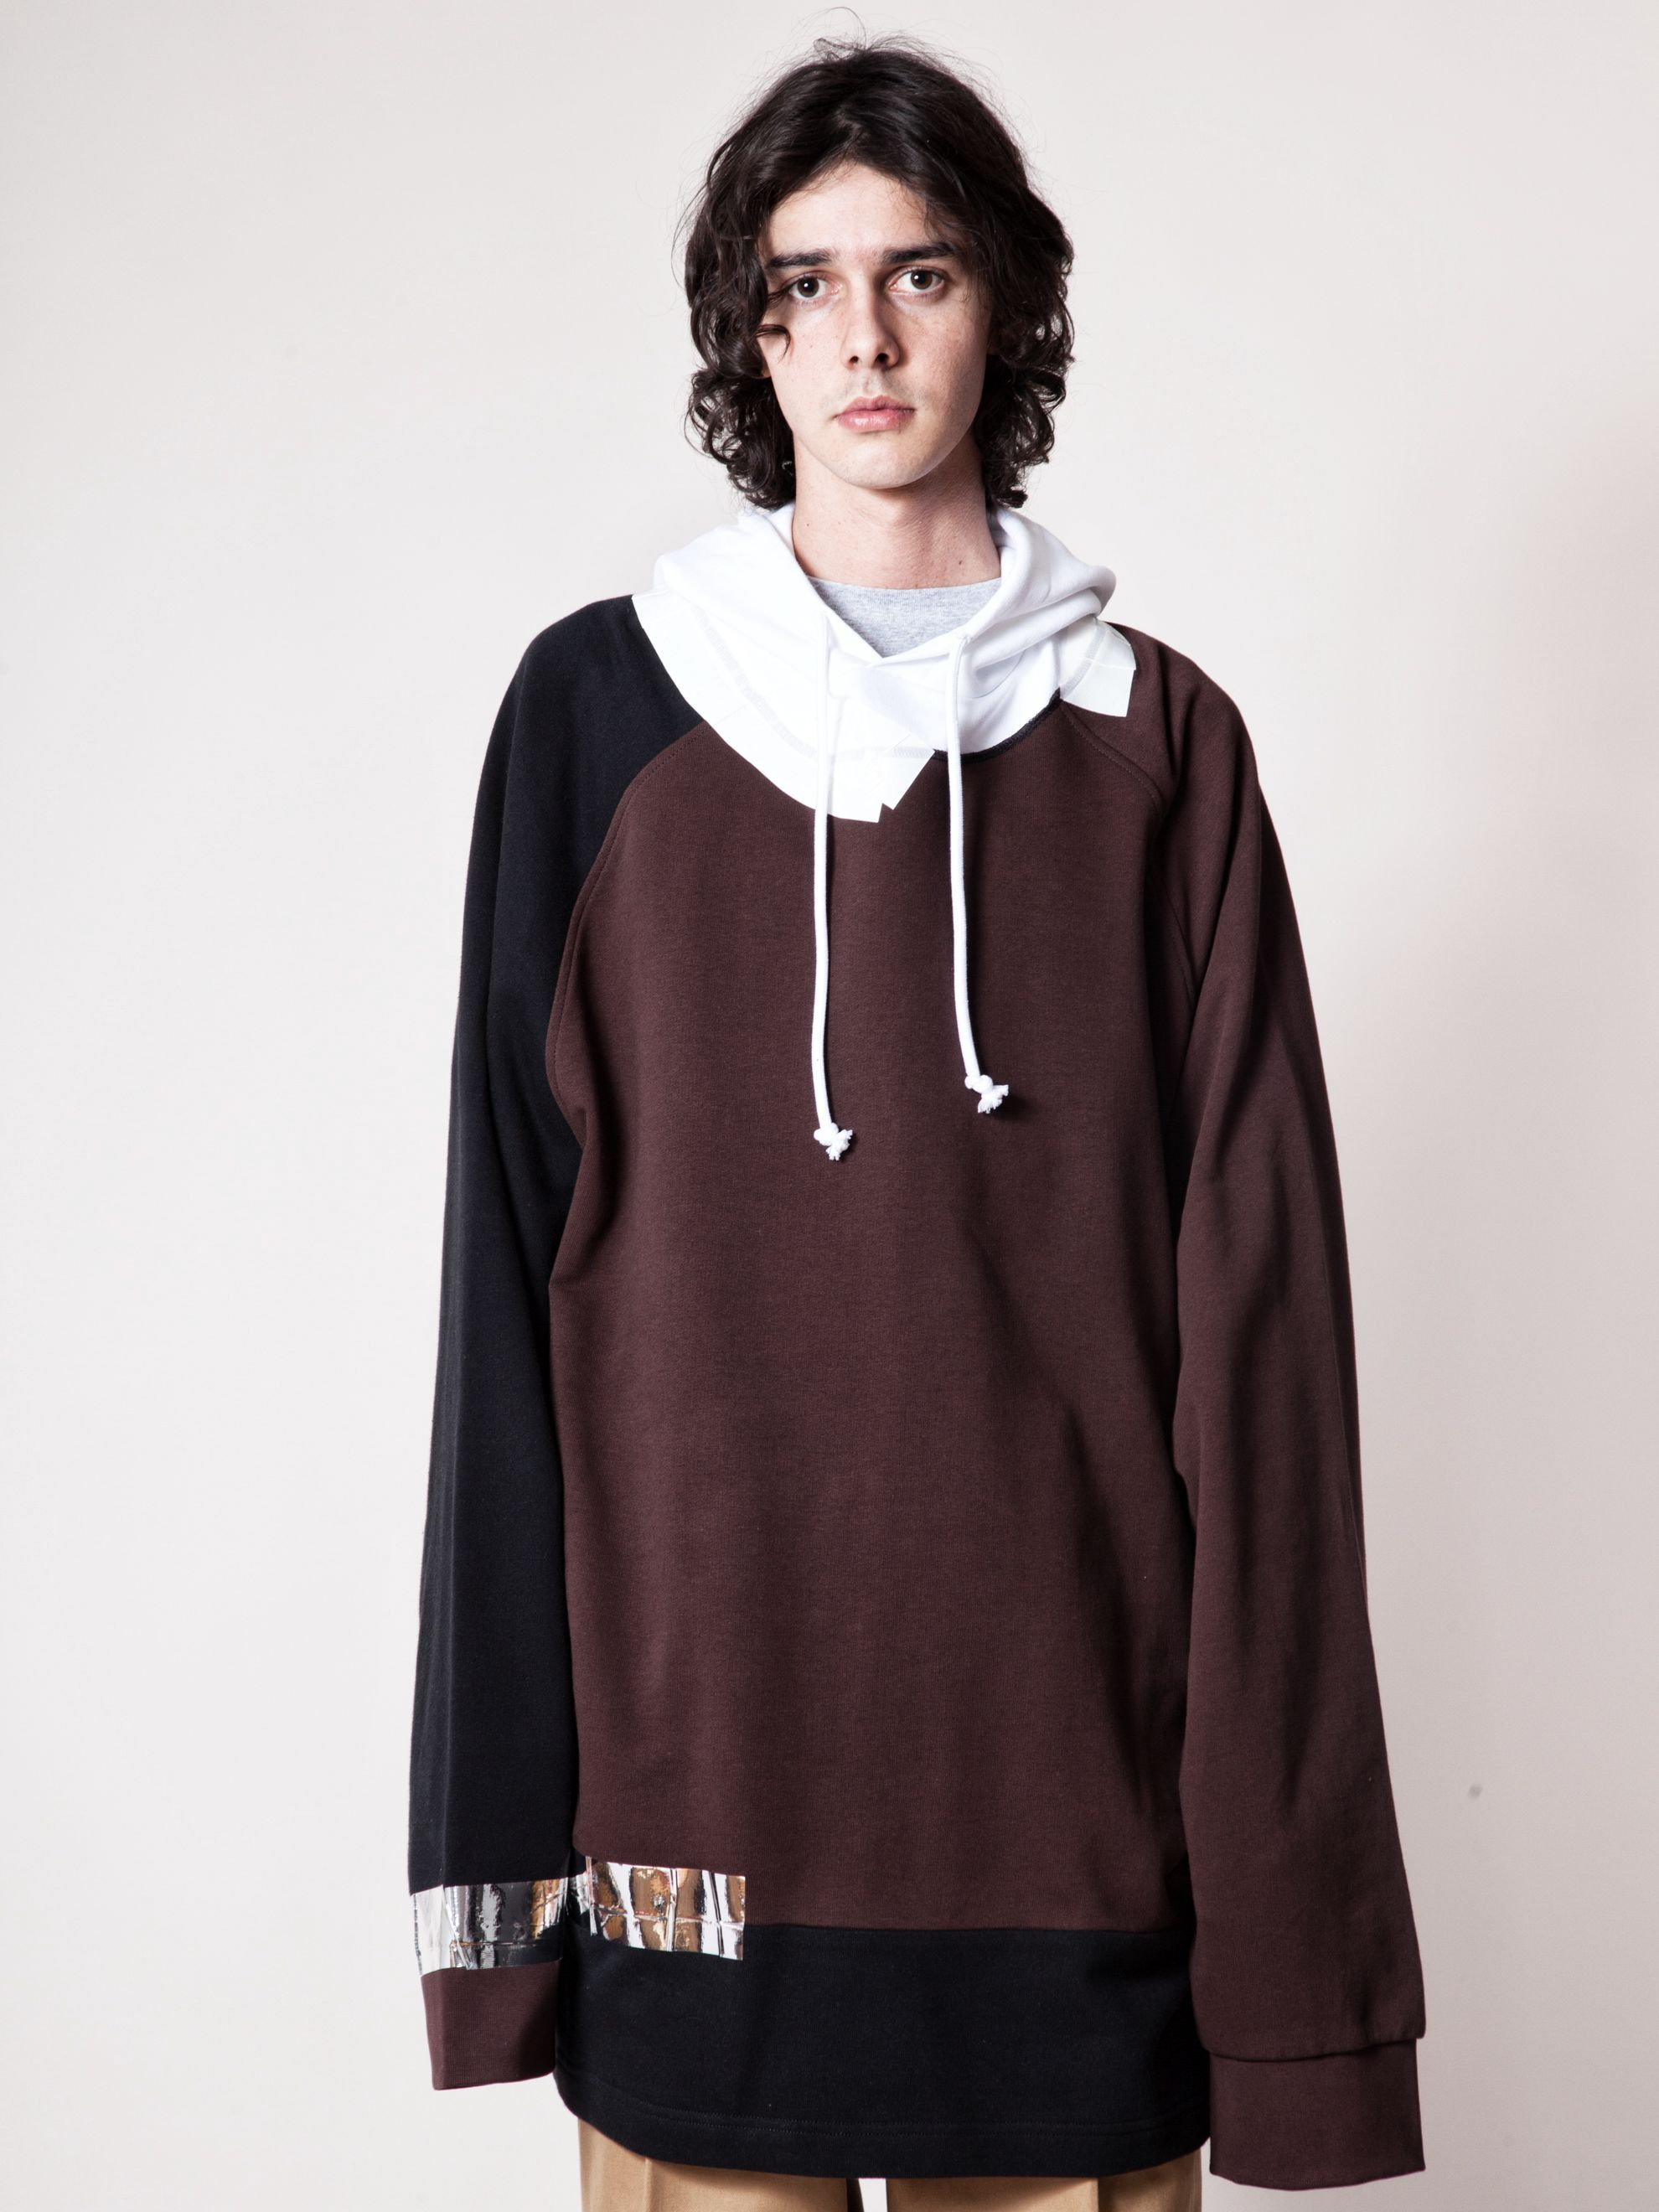 White/Red Oversized Hooded Sweatshirt (Tape) 3